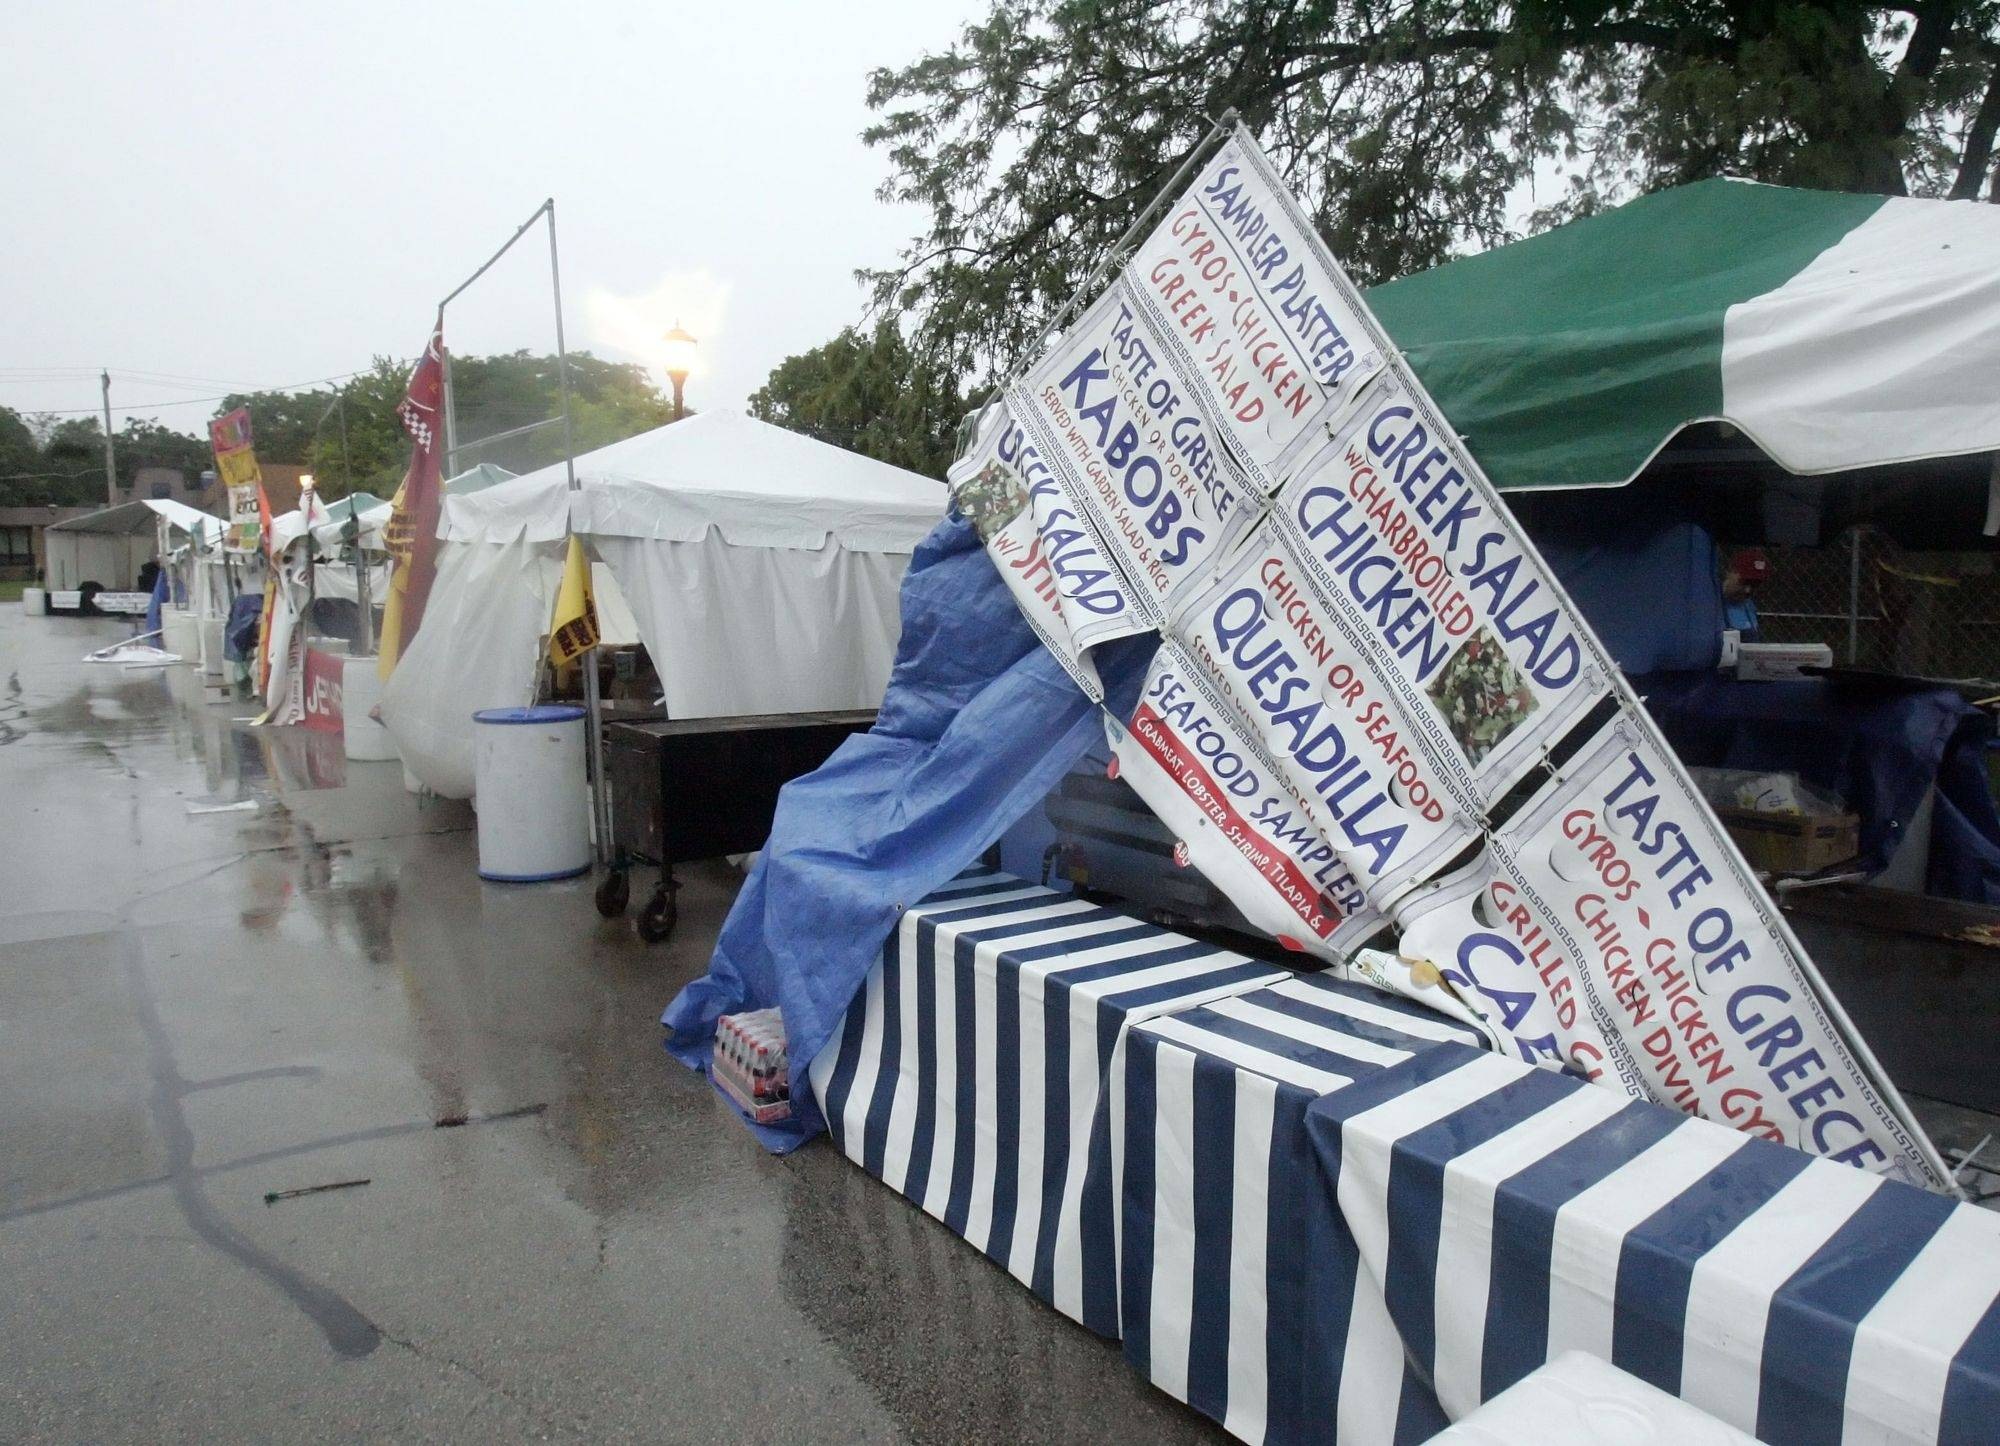 Tents were impacted at the grounds of the Libertyville Days festival .